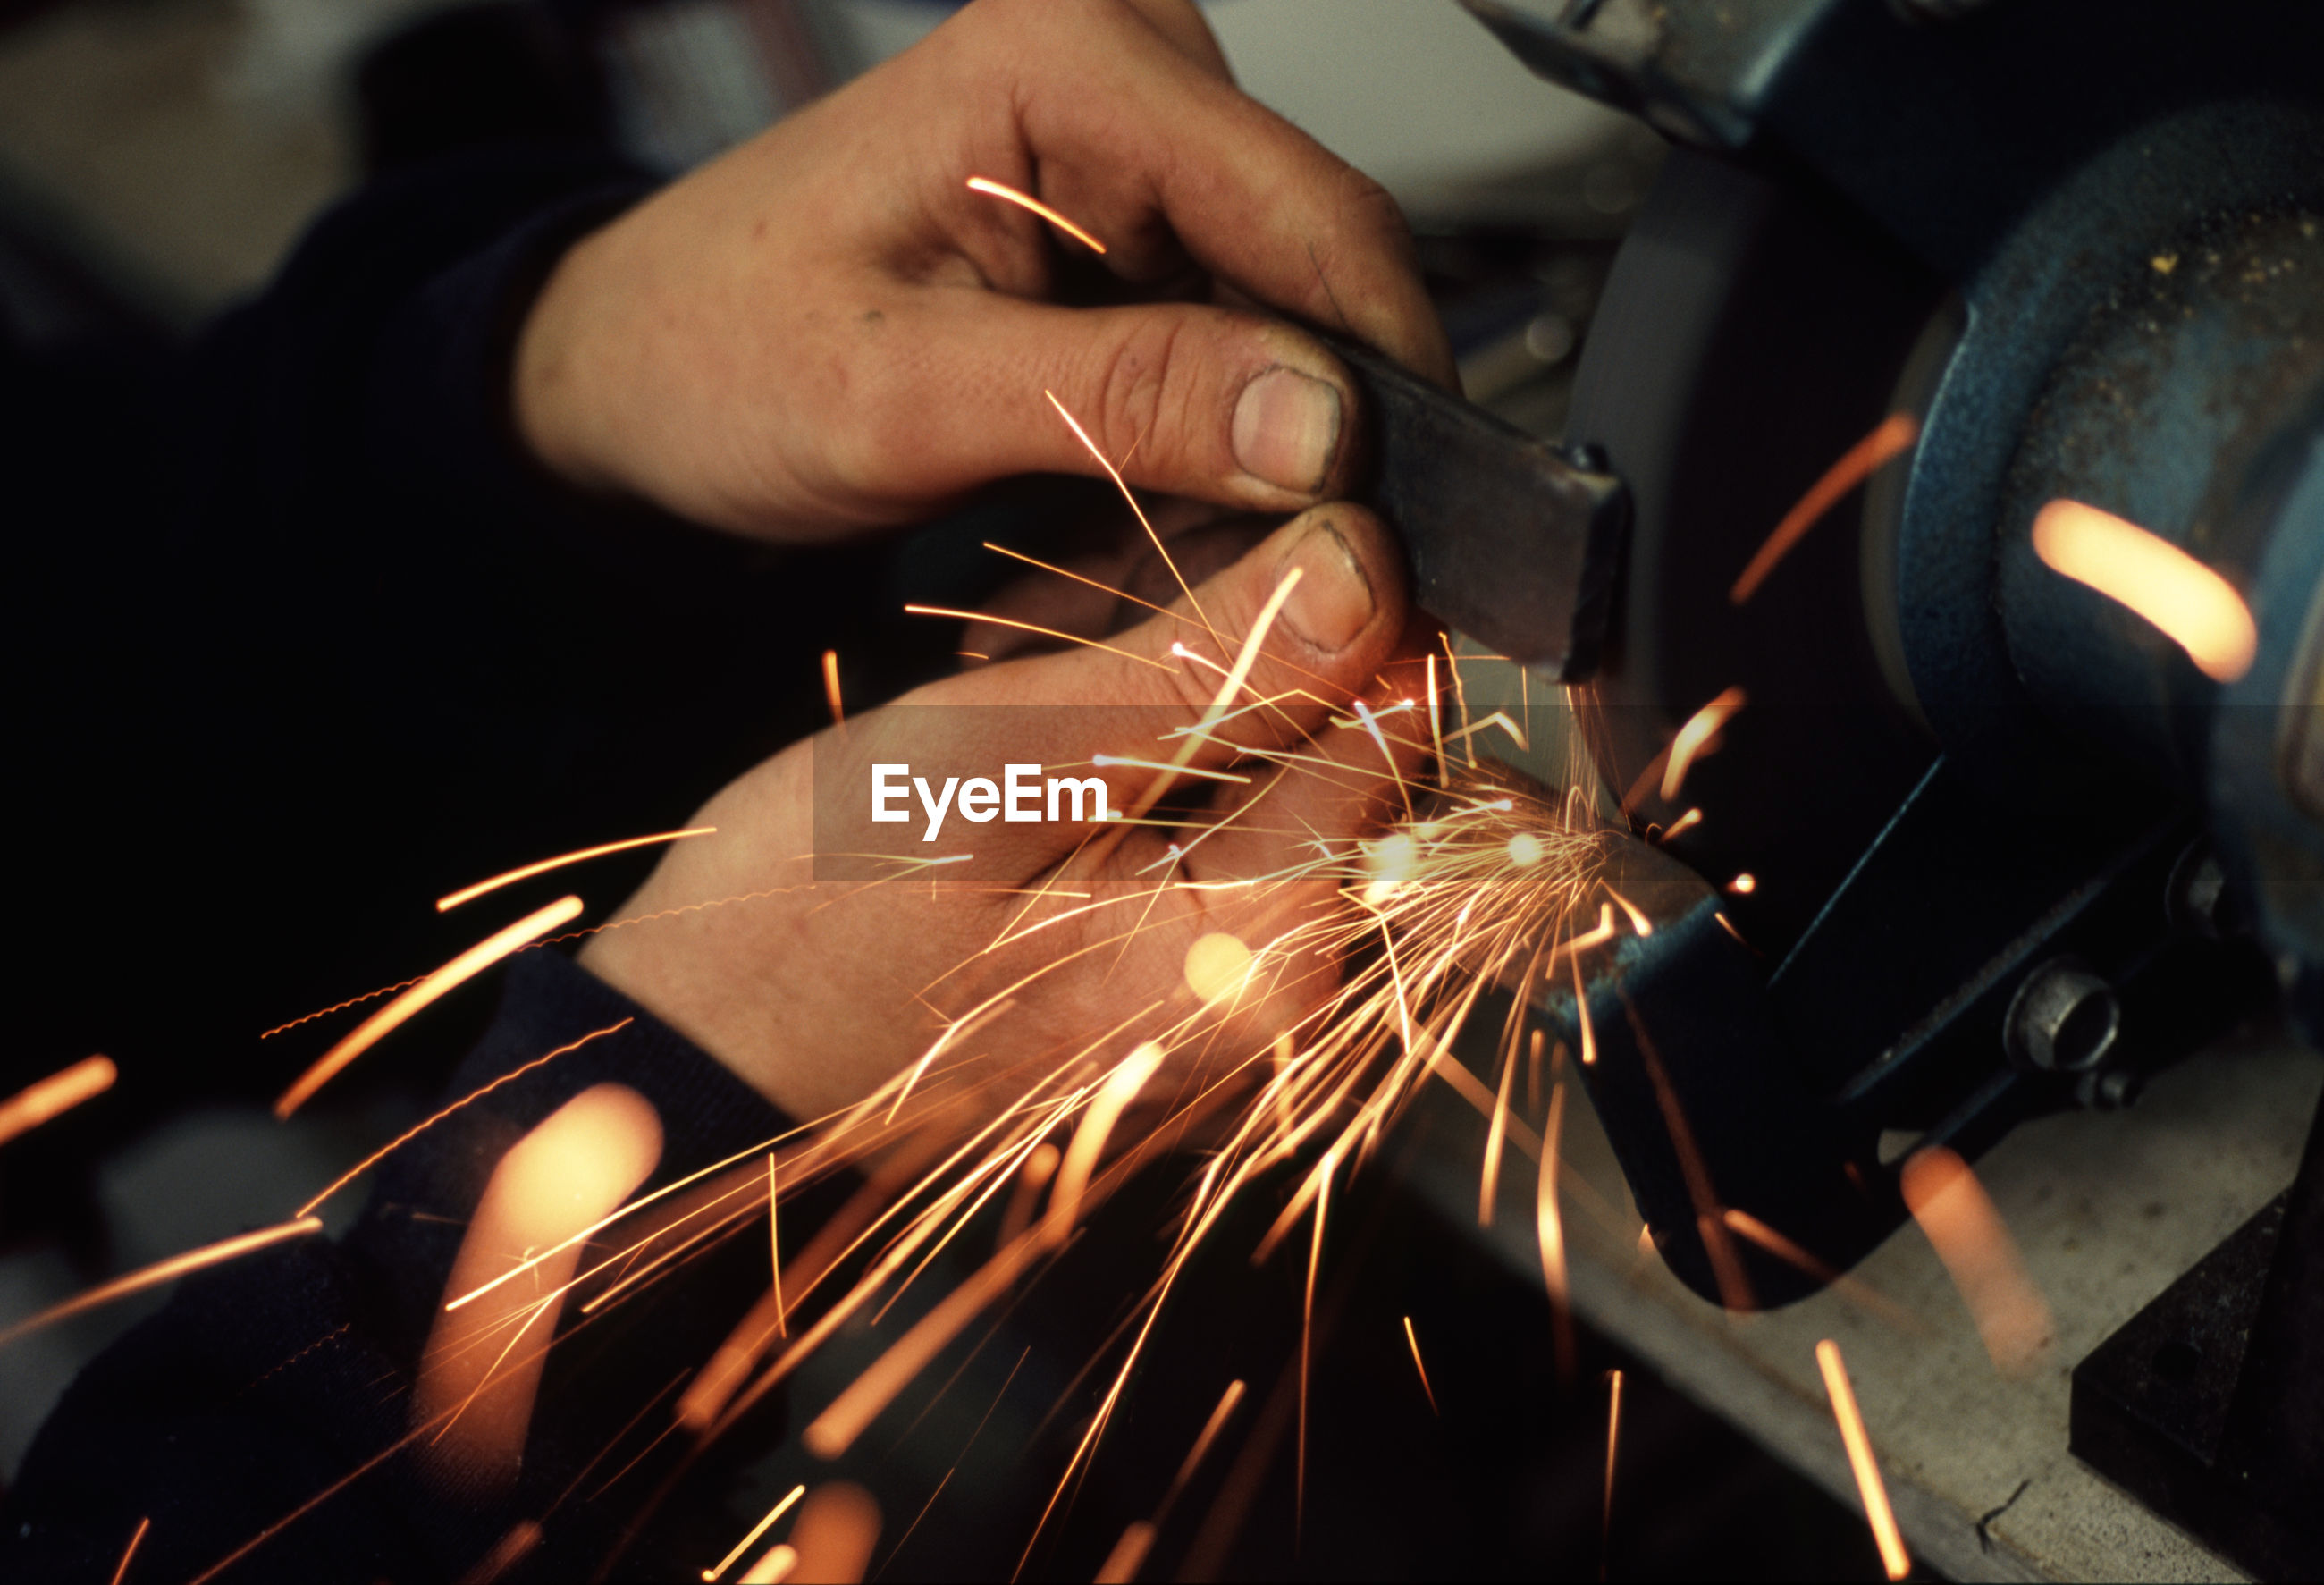 Sparks emitting while worker grinding iron